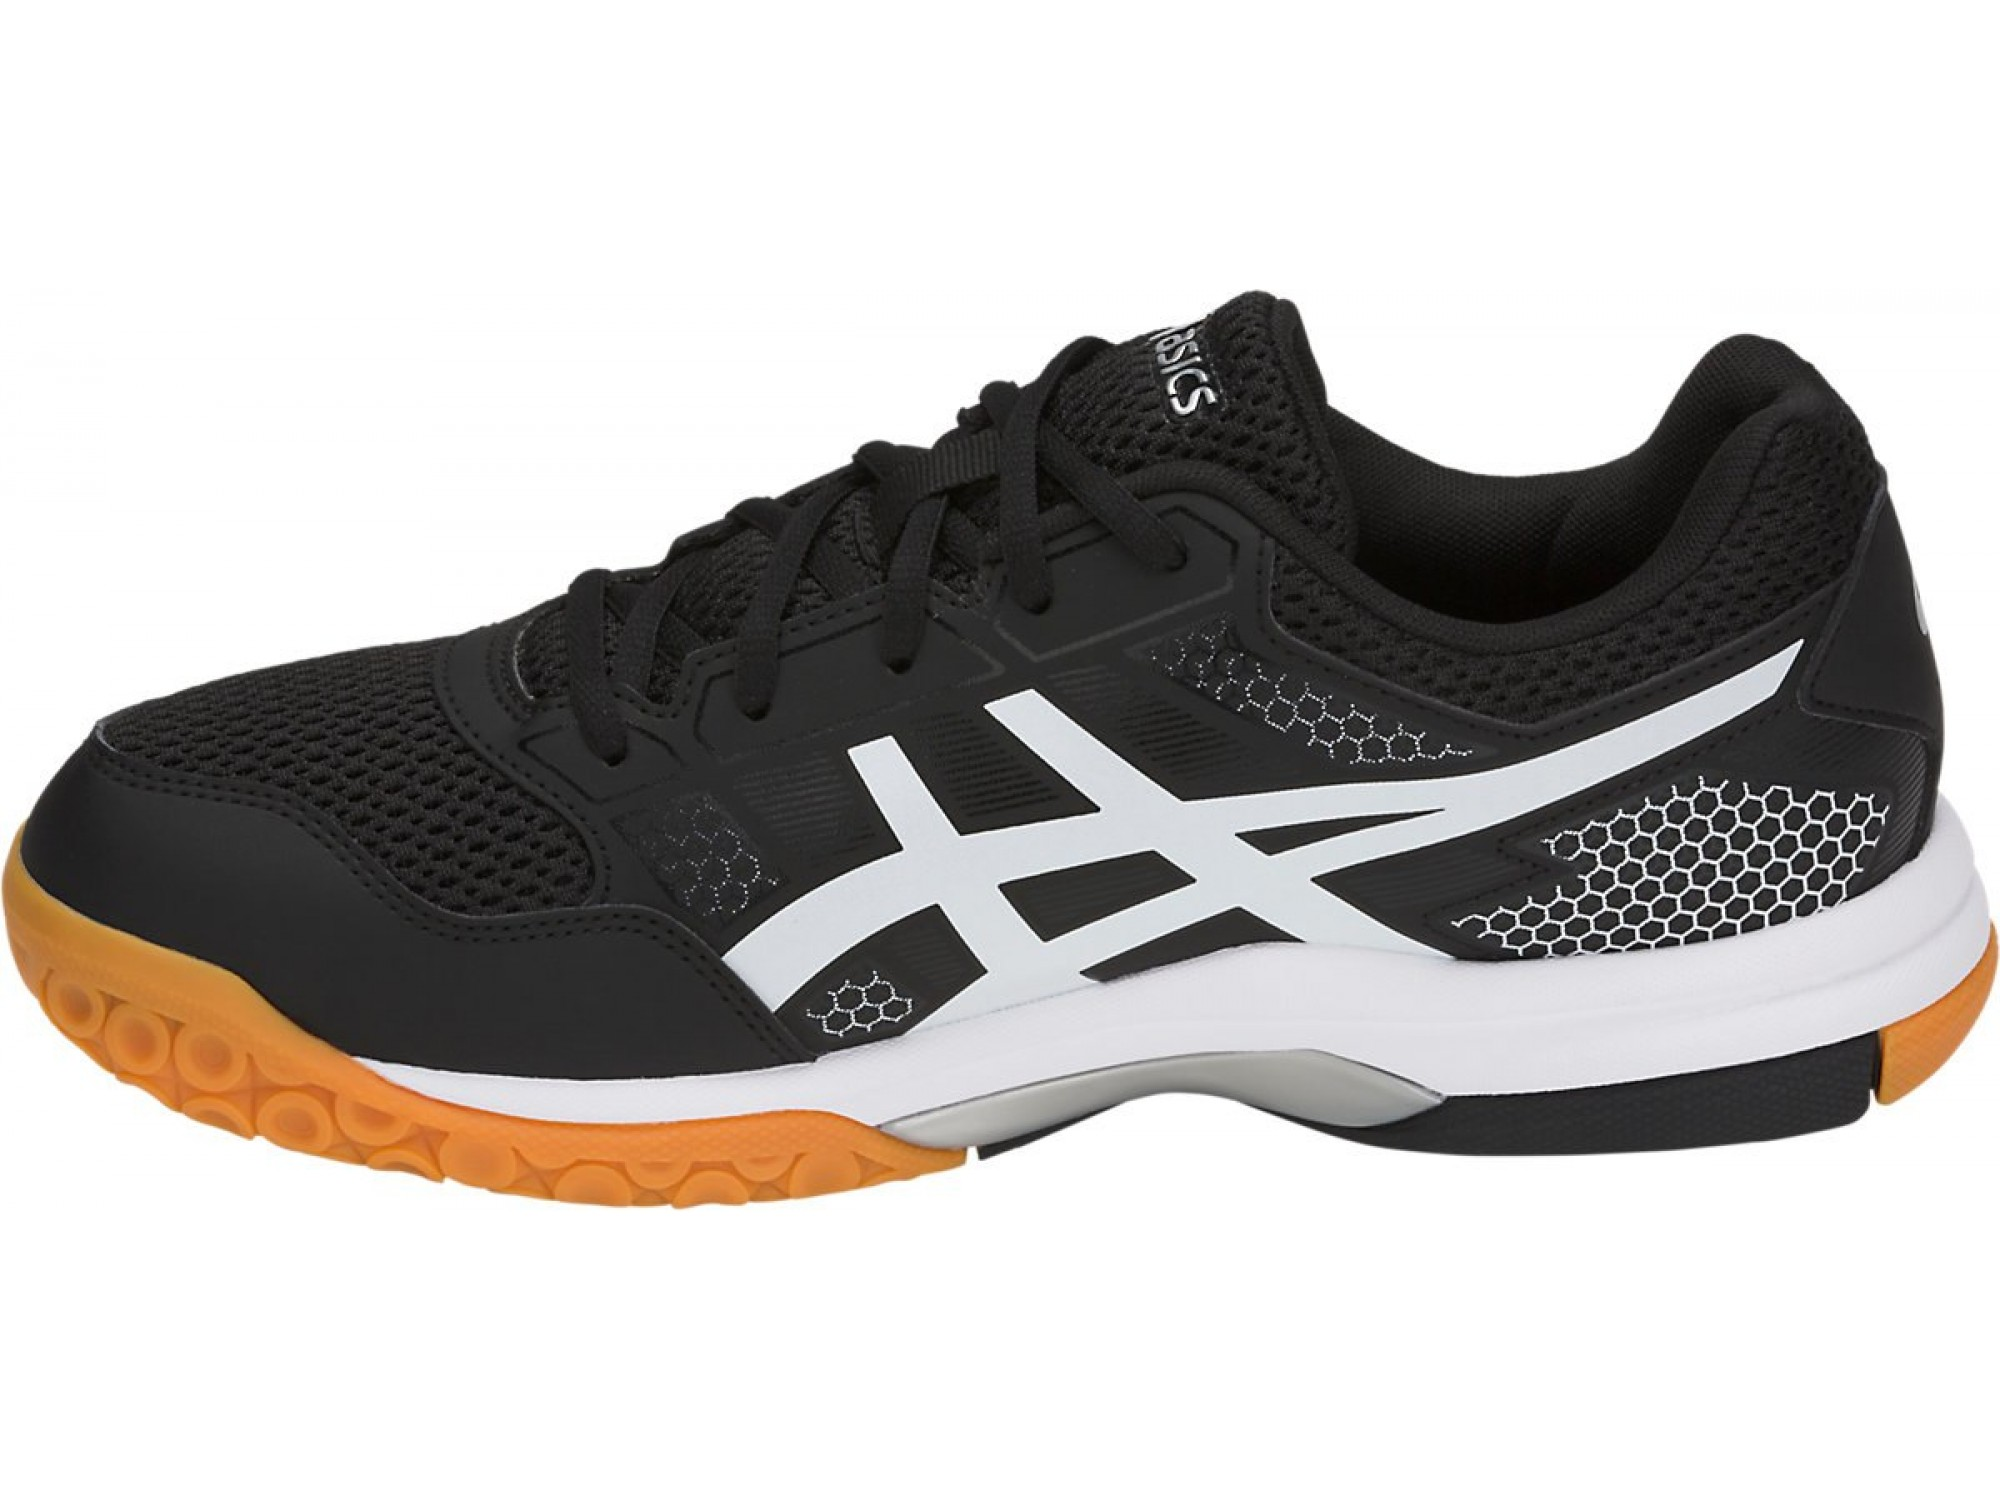 Кроссовки ASICS M Gel-Rocket 8 BK/WH 2019. Фото ¹7